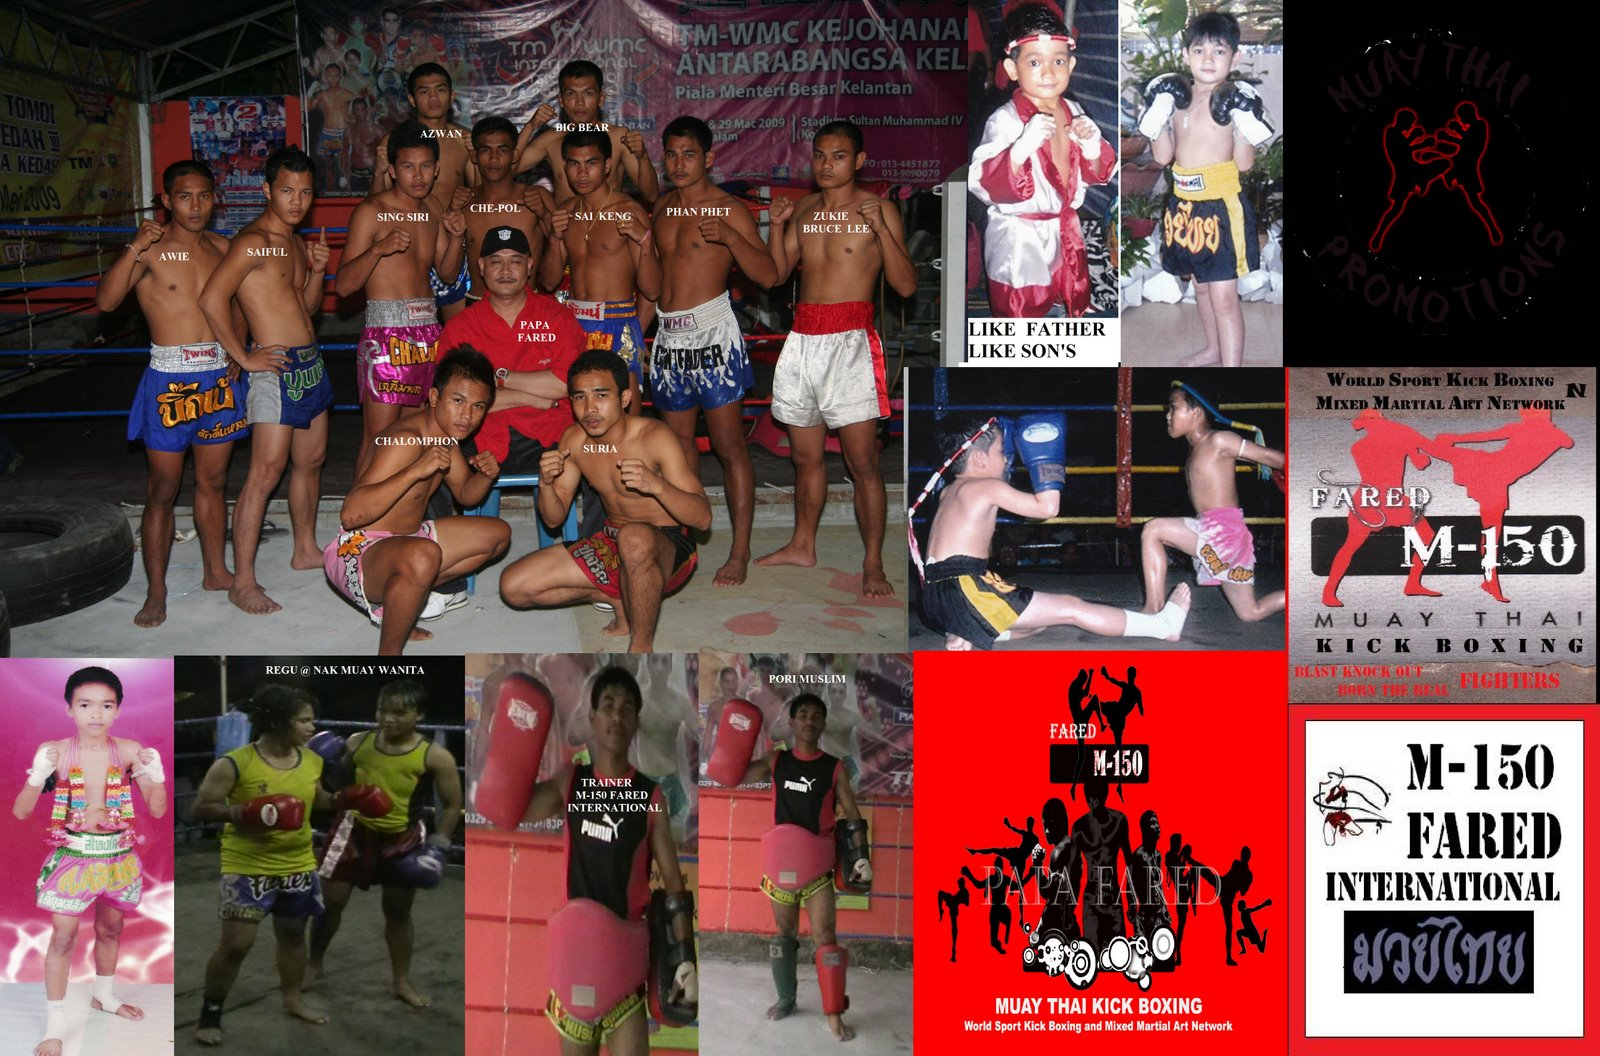 M-150 FARED MUAY THAI &amp; SPORT